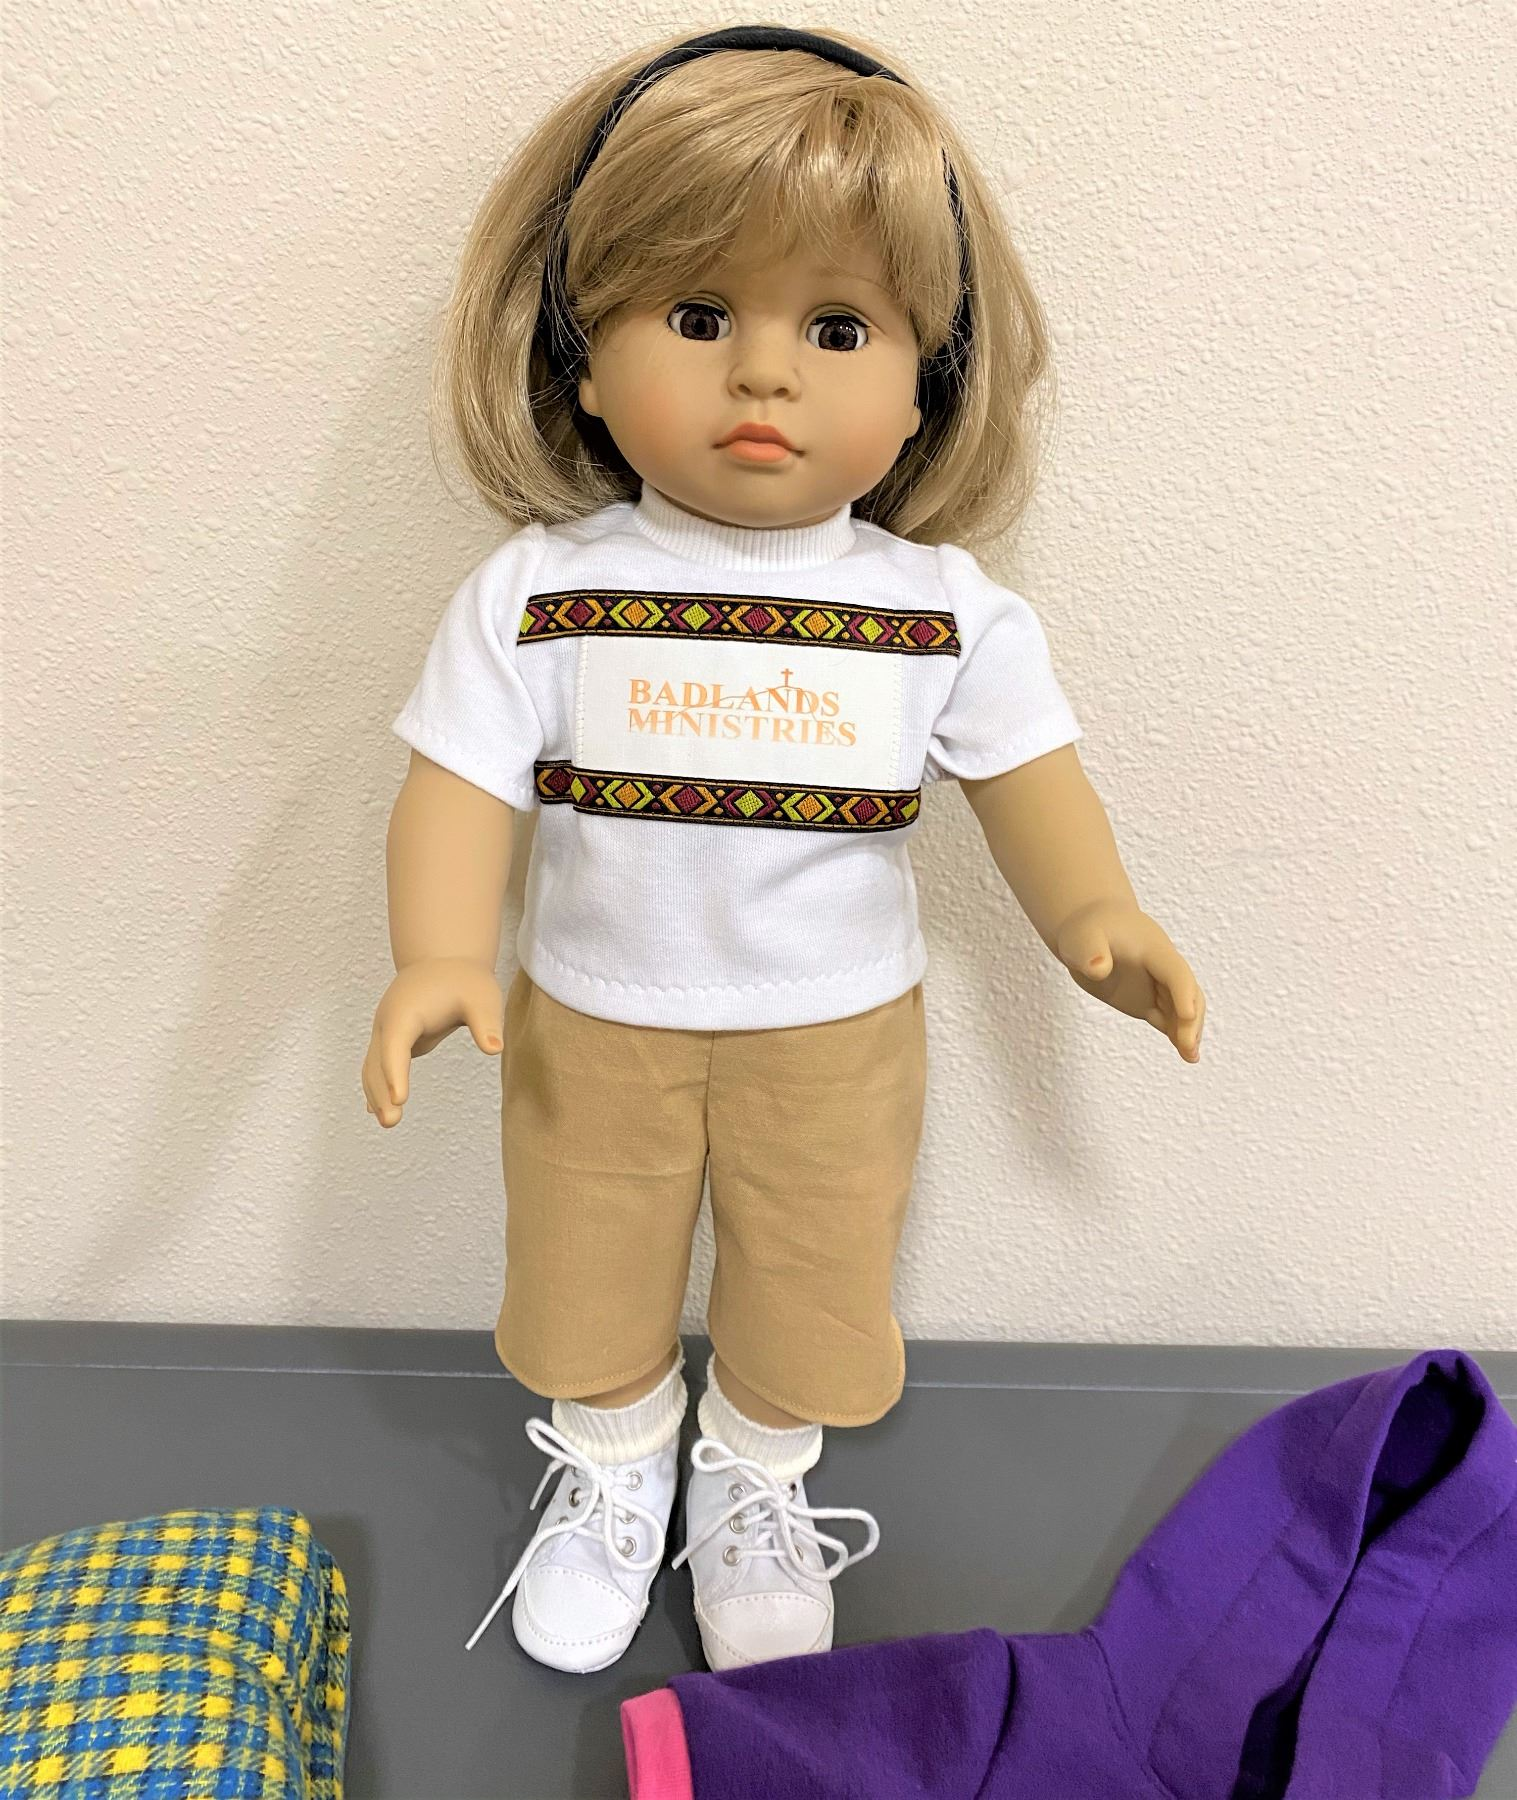 Custom Badlands Ministries Doll & Accesories (2 of 2)